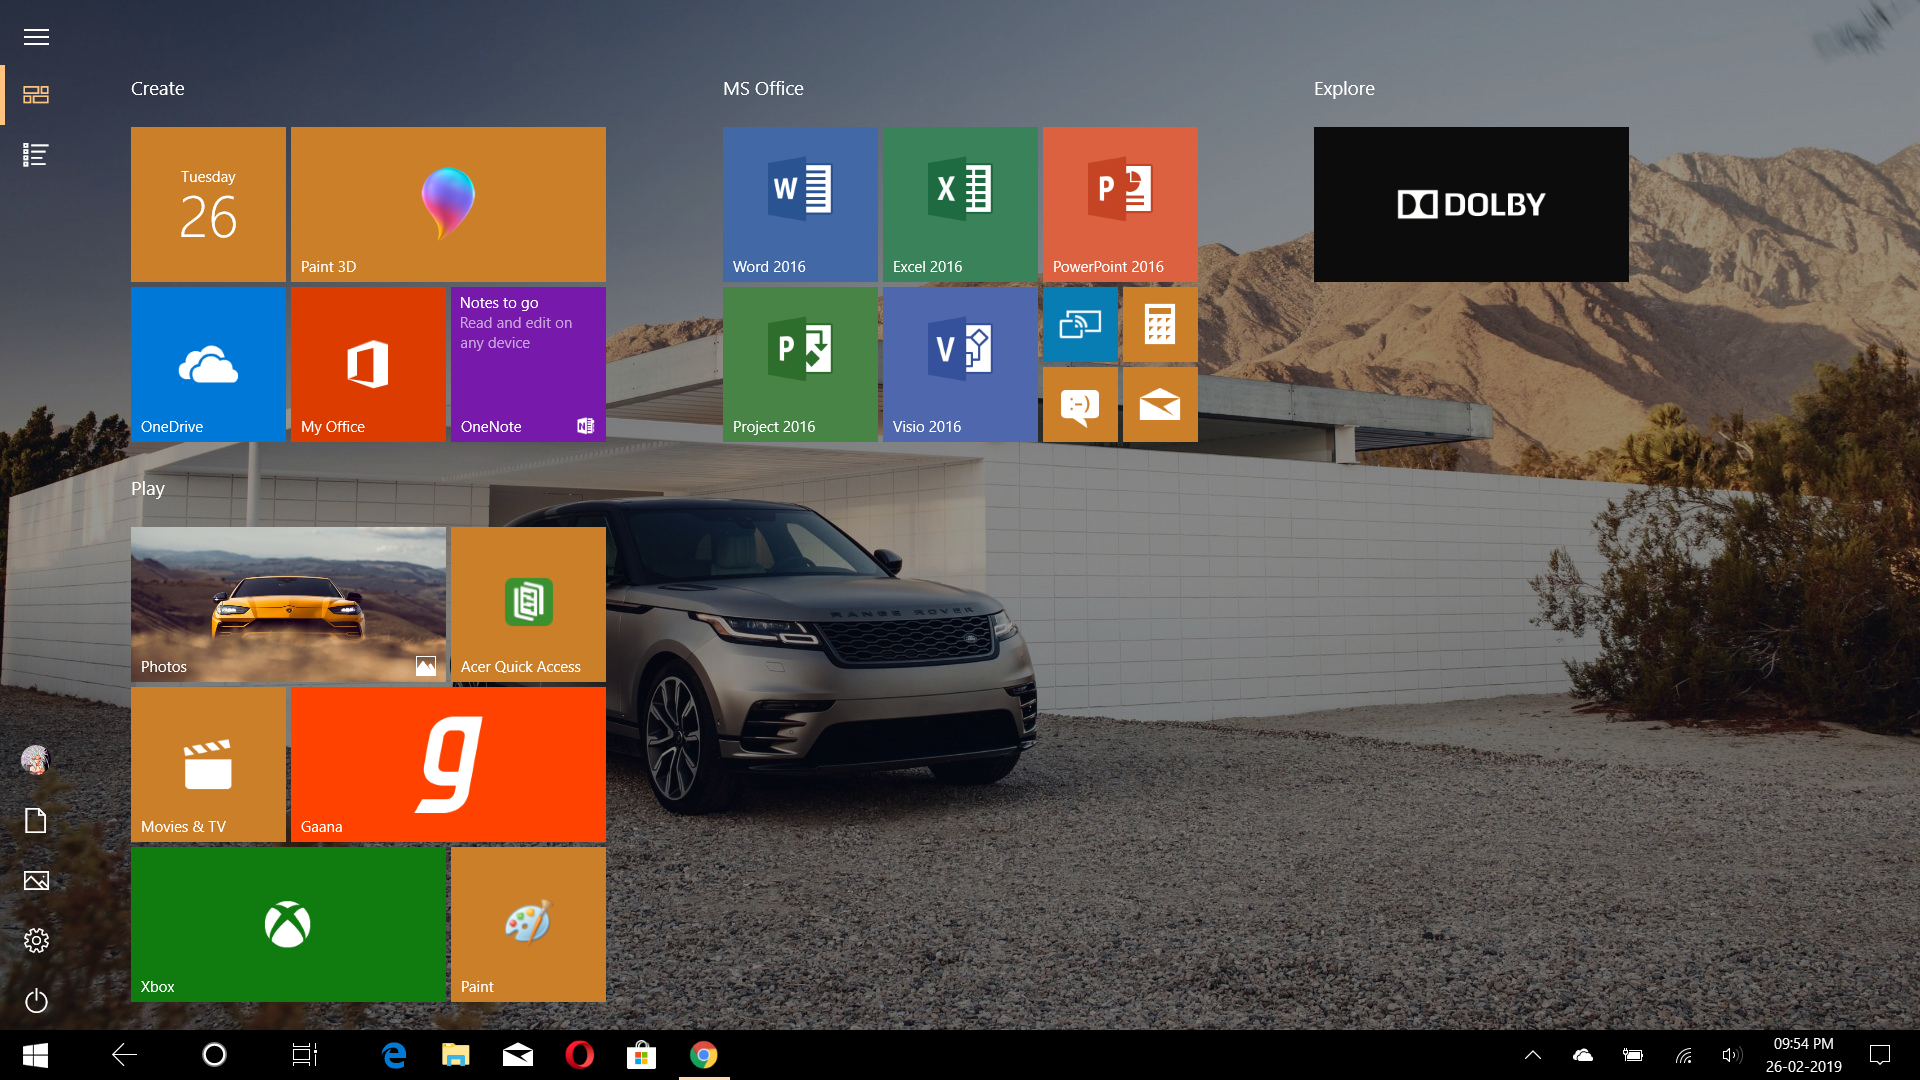 I have moved to some kind of new windows 10 or what